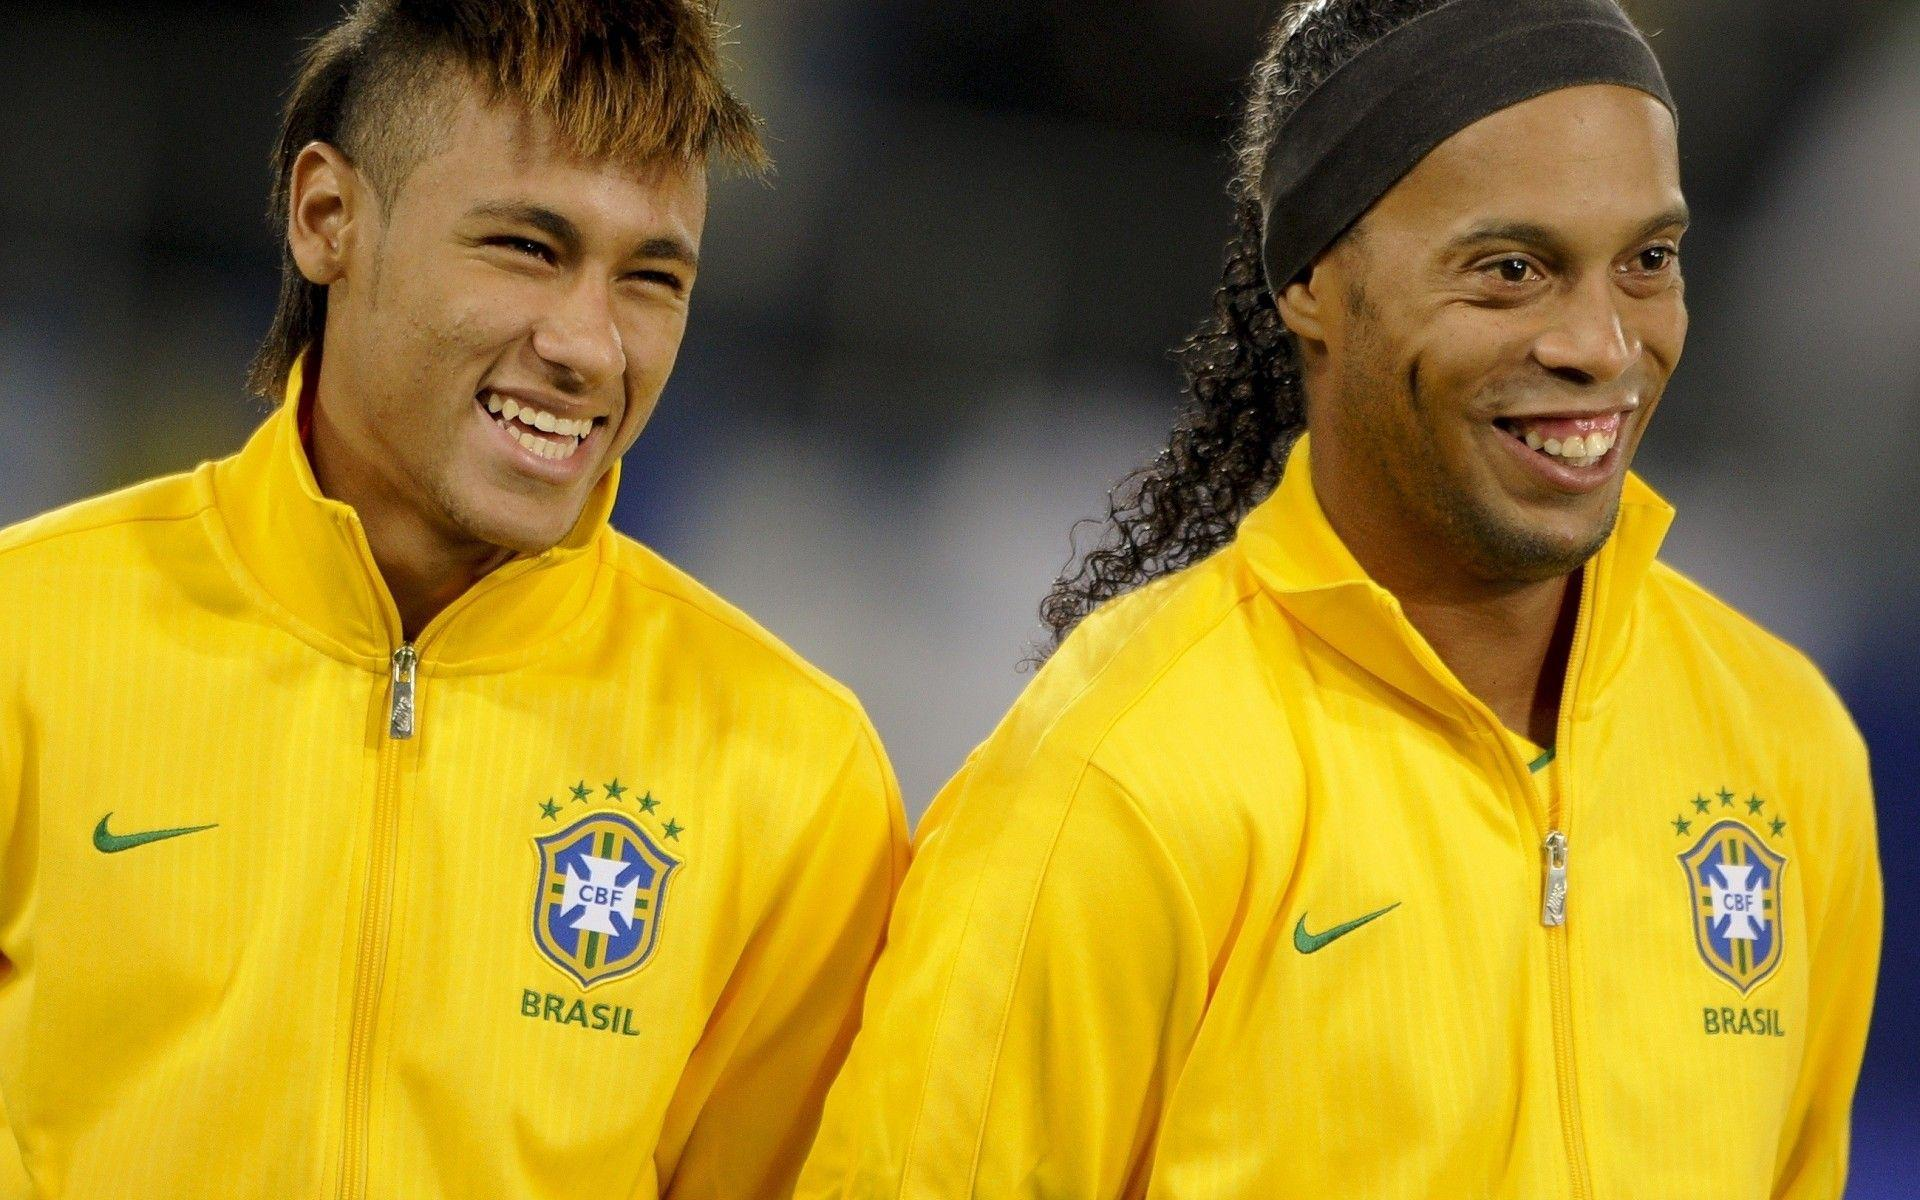 Cool Neymar Wallpapers HD | HD Wallpapers, Backgrounds, Images ...